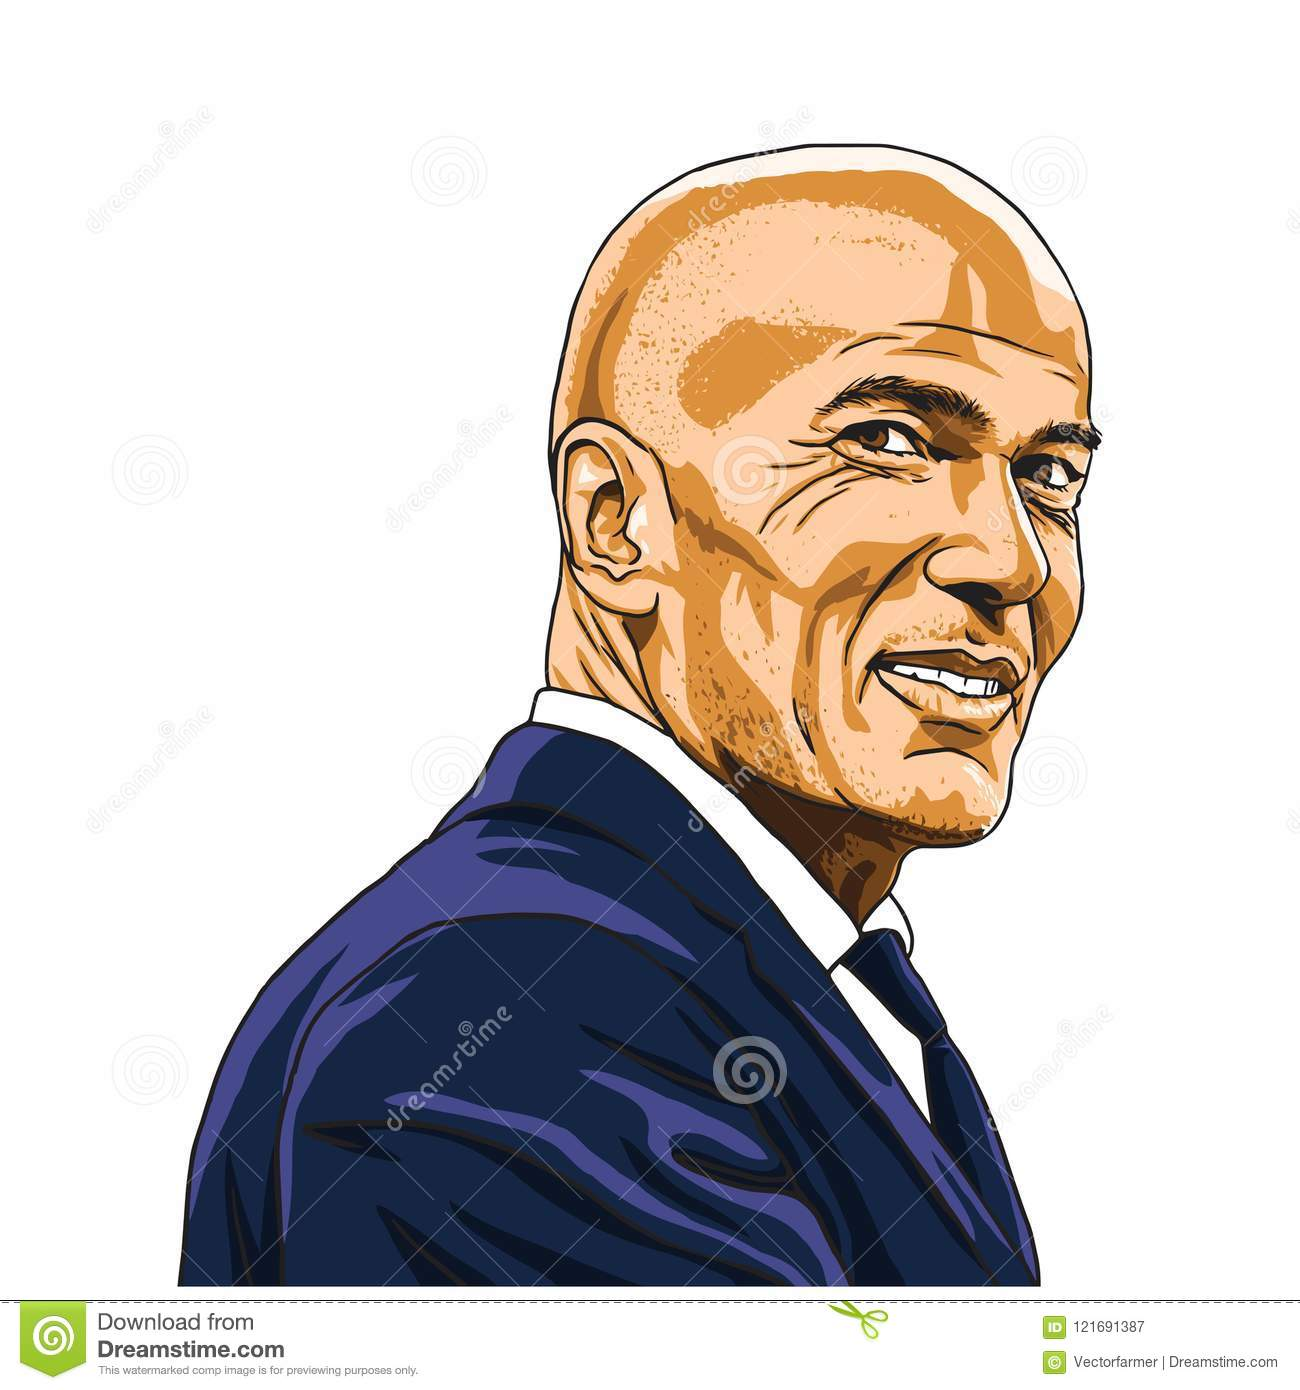 Zinedine Zidane Zizou Vector Illustration Portrait Madrid, el 20 de julio de 2018